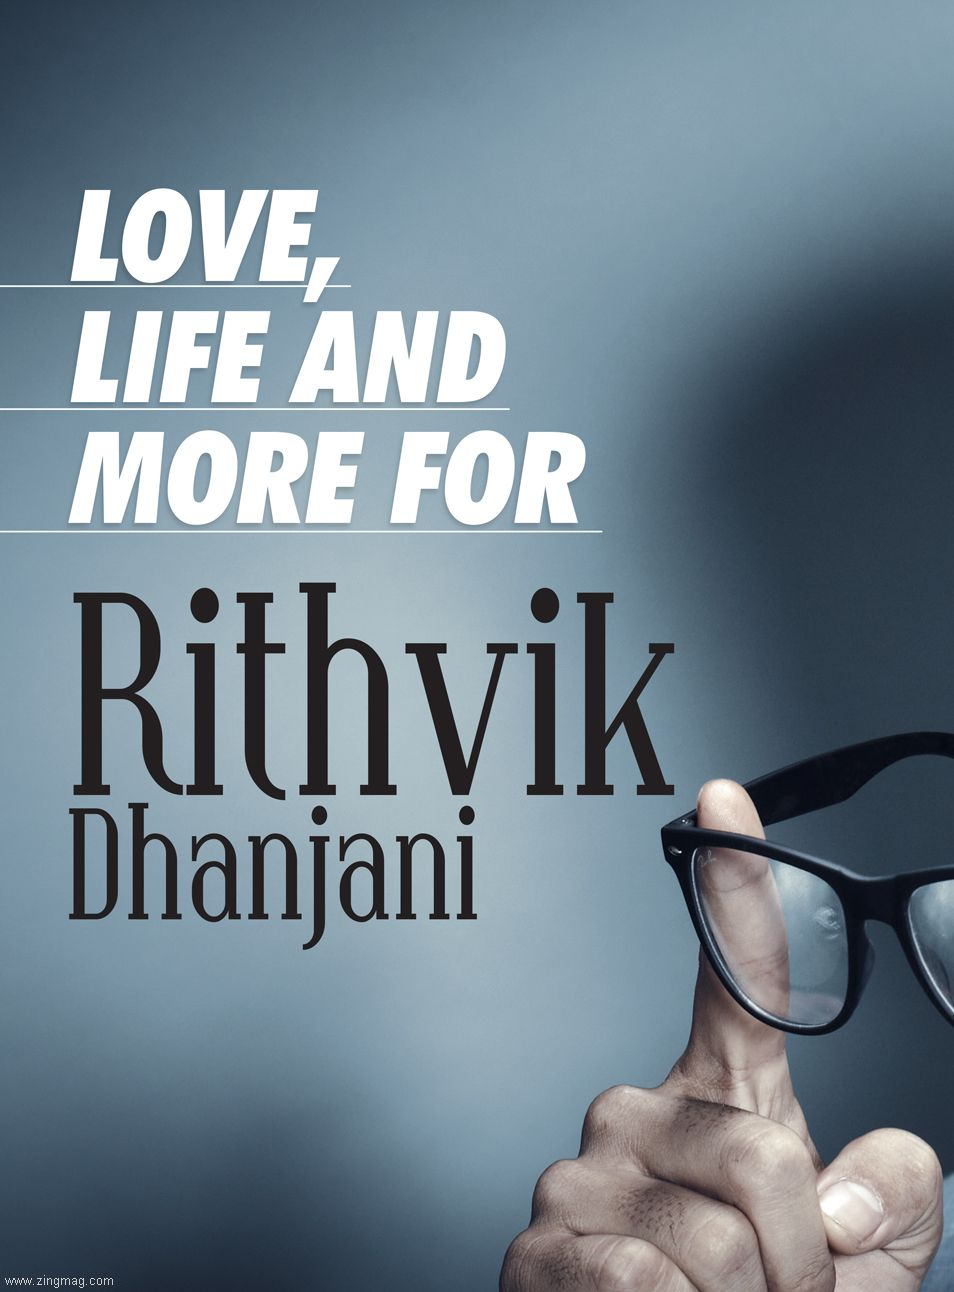 Love Life and More for Rithvik Dhanjani